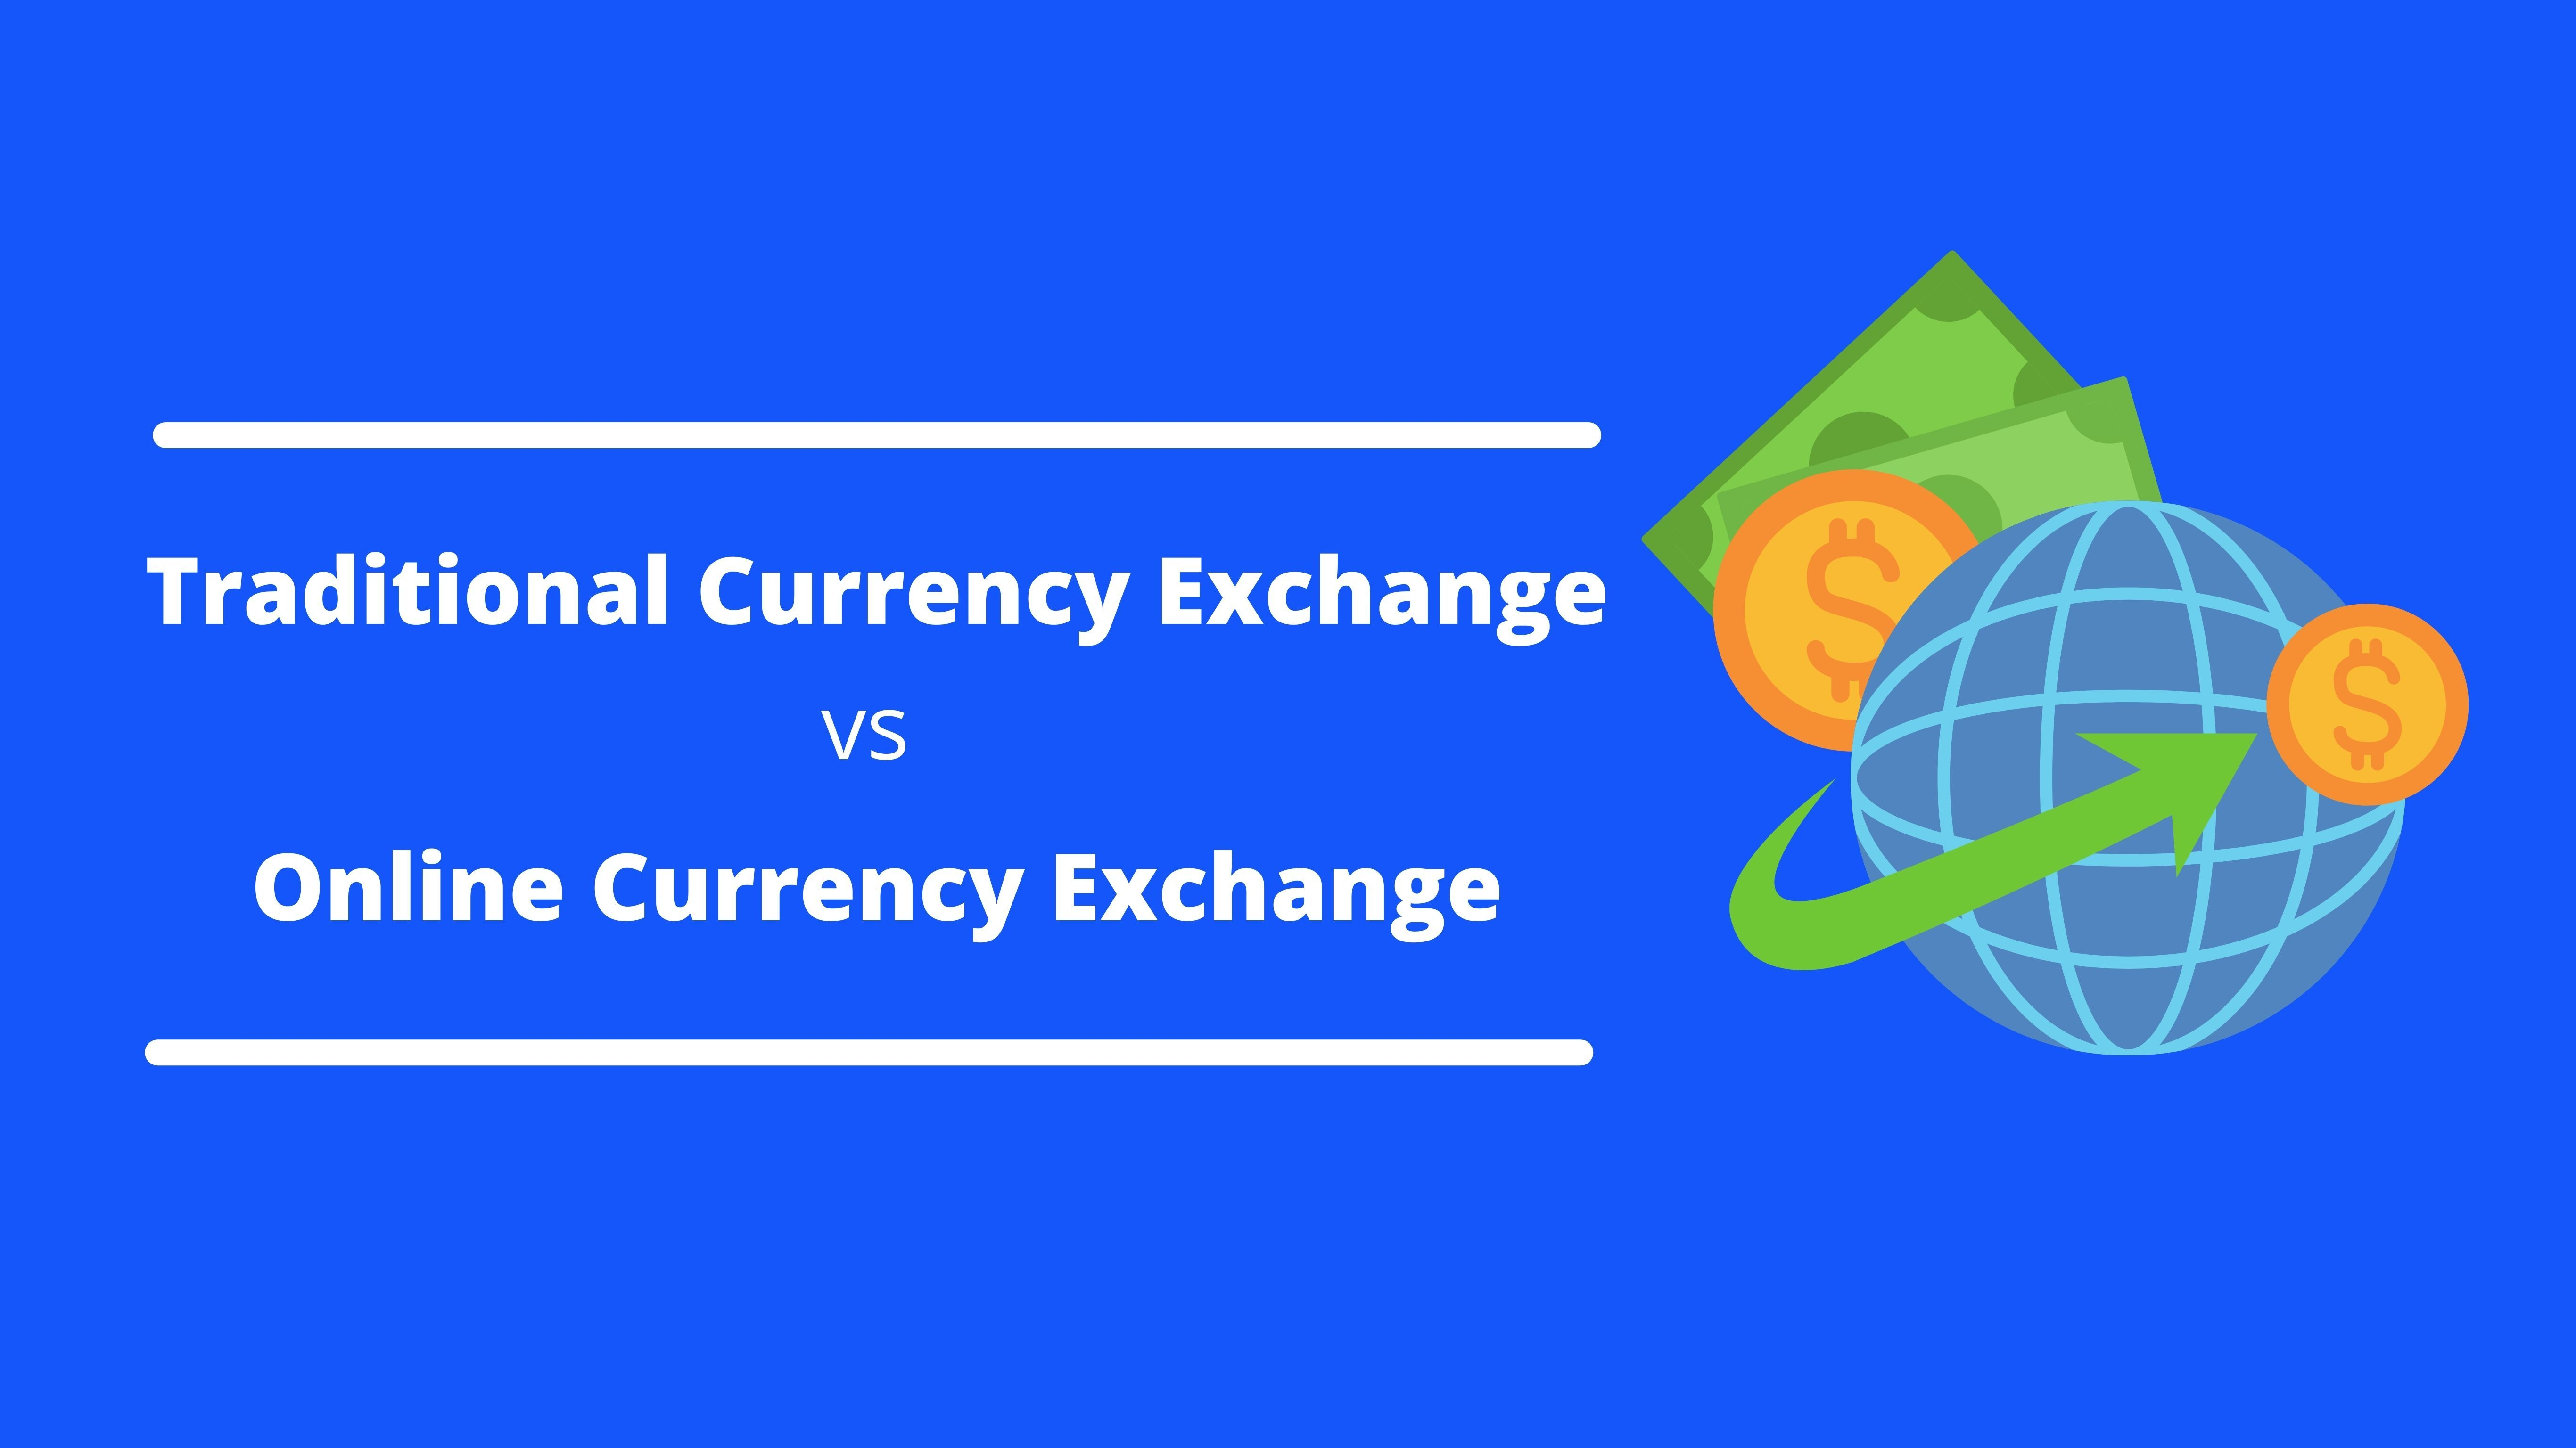 Traditional Currency Exchange vs Online Currency Exchange